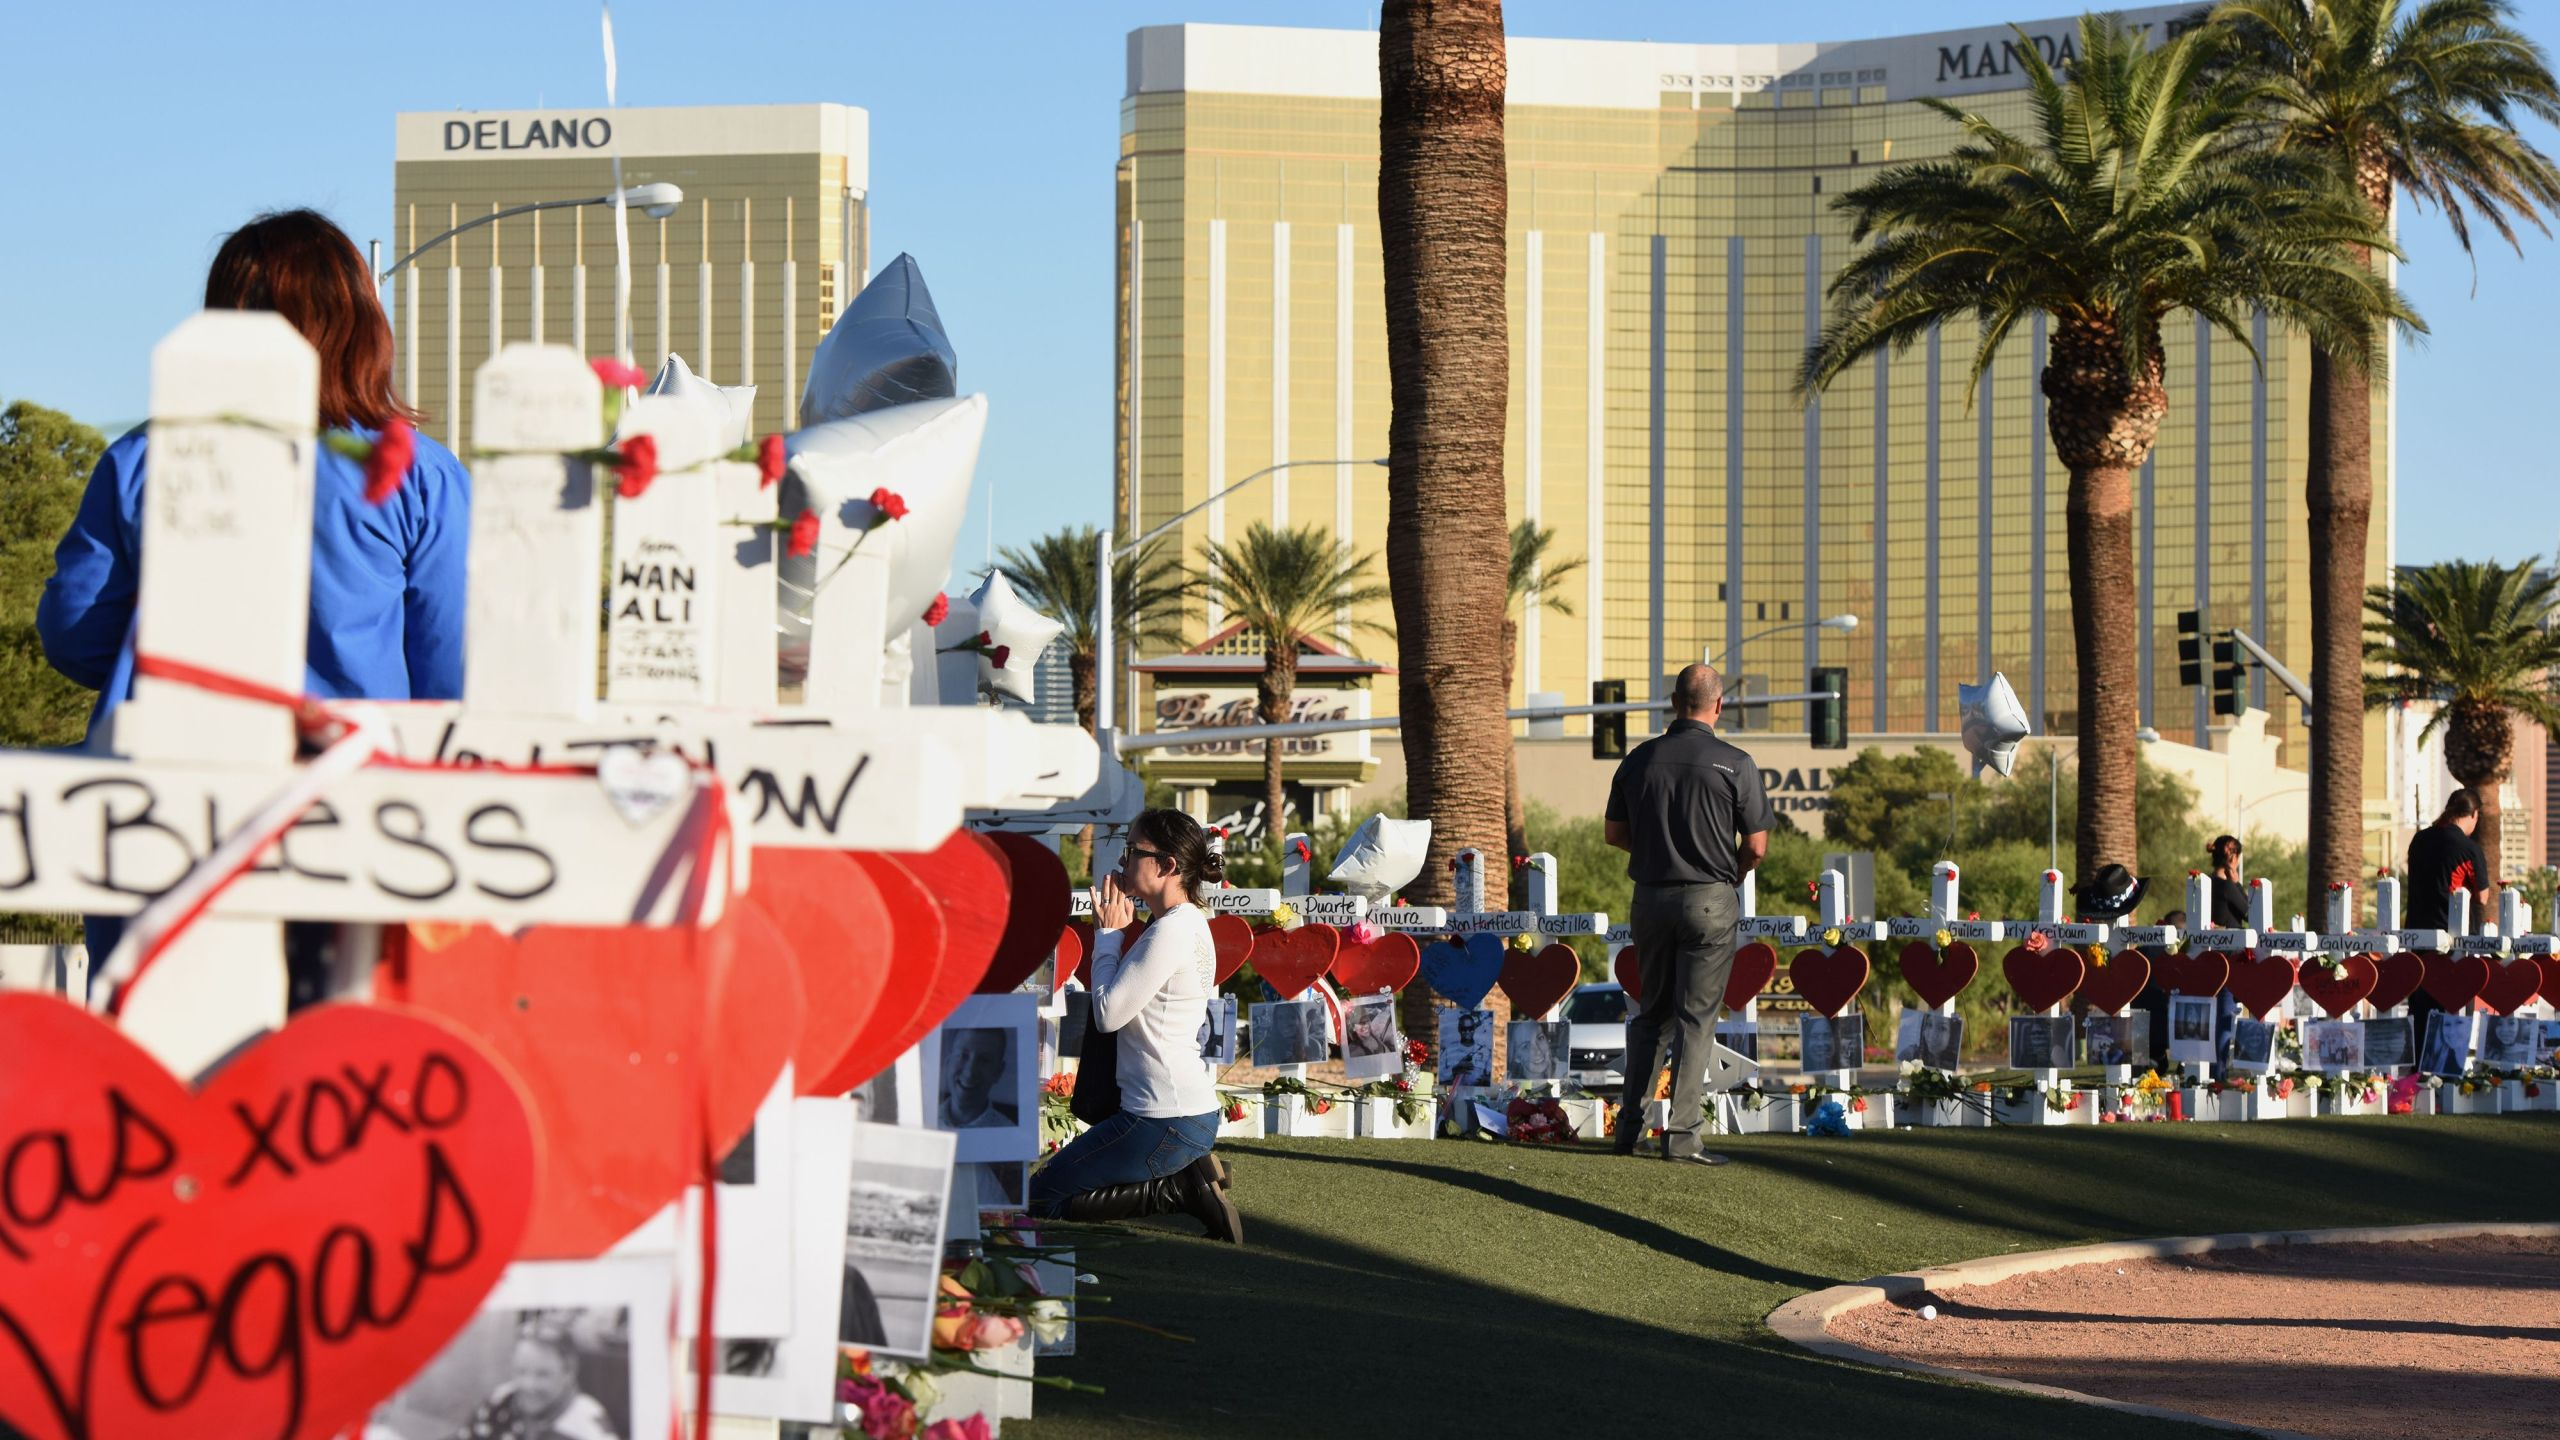 A woman prays beside 58 white crosses for the victims of a mass shooting on the Las Vegas Strip just south of the Mandalay Bay hotel on Oct. 6, 2017. (Credit: ROBYN BECK/AFP/Getty Images)